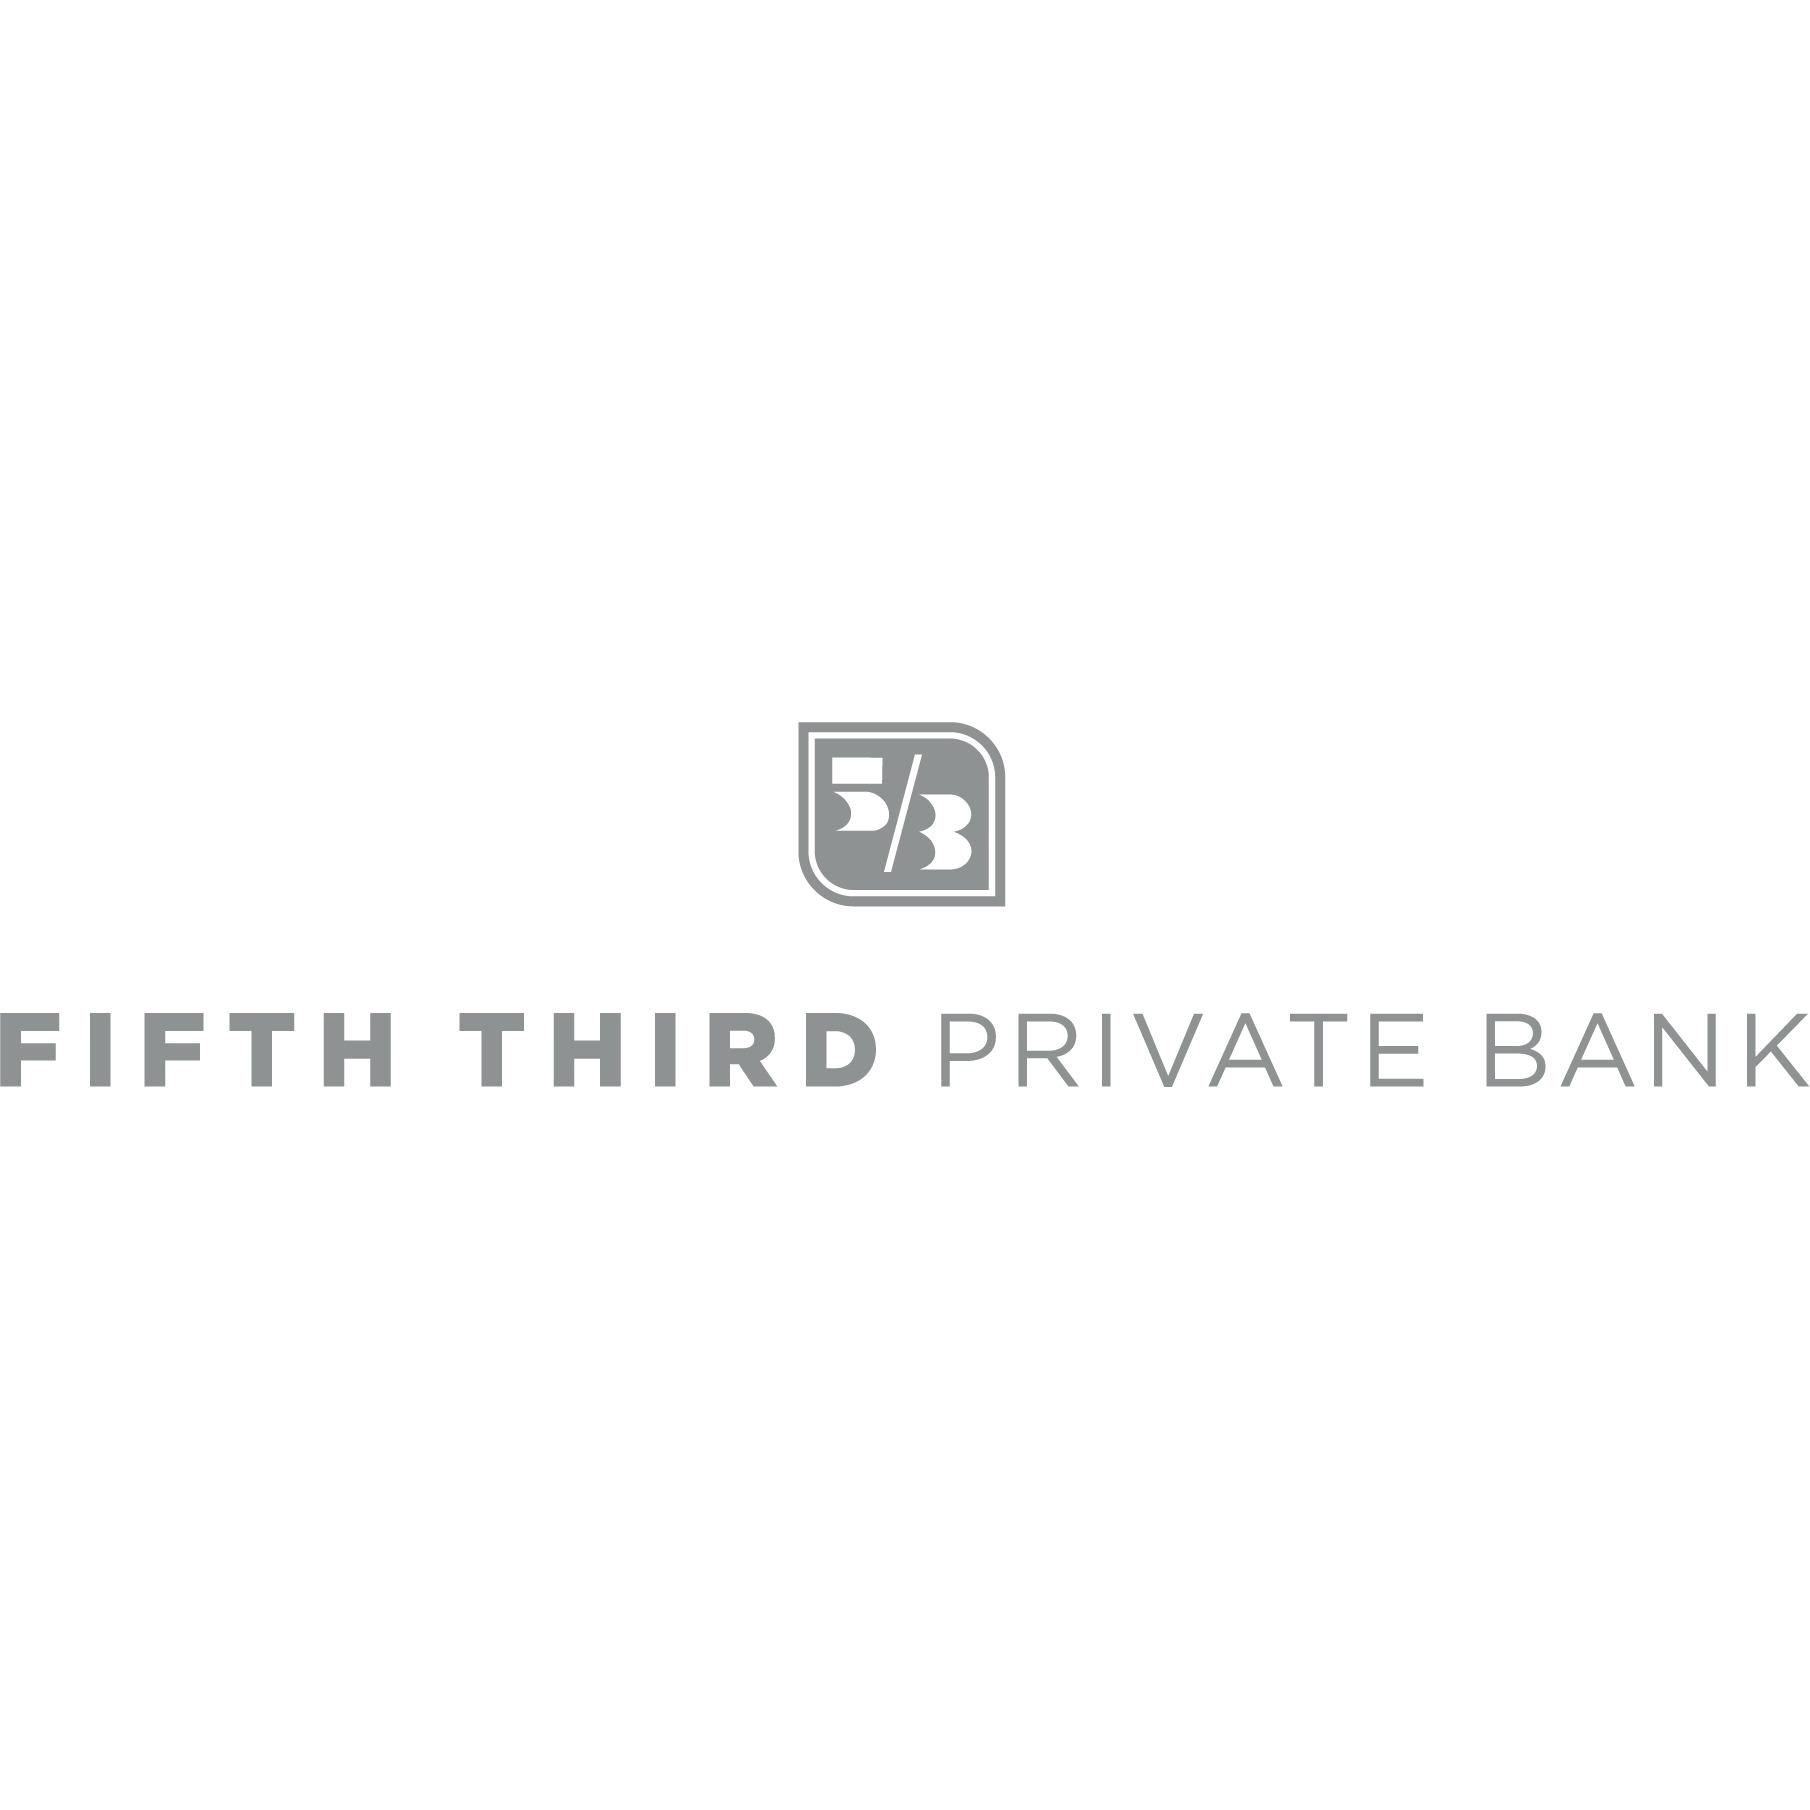 Fifth Third Private Bank - Lauren Procopio